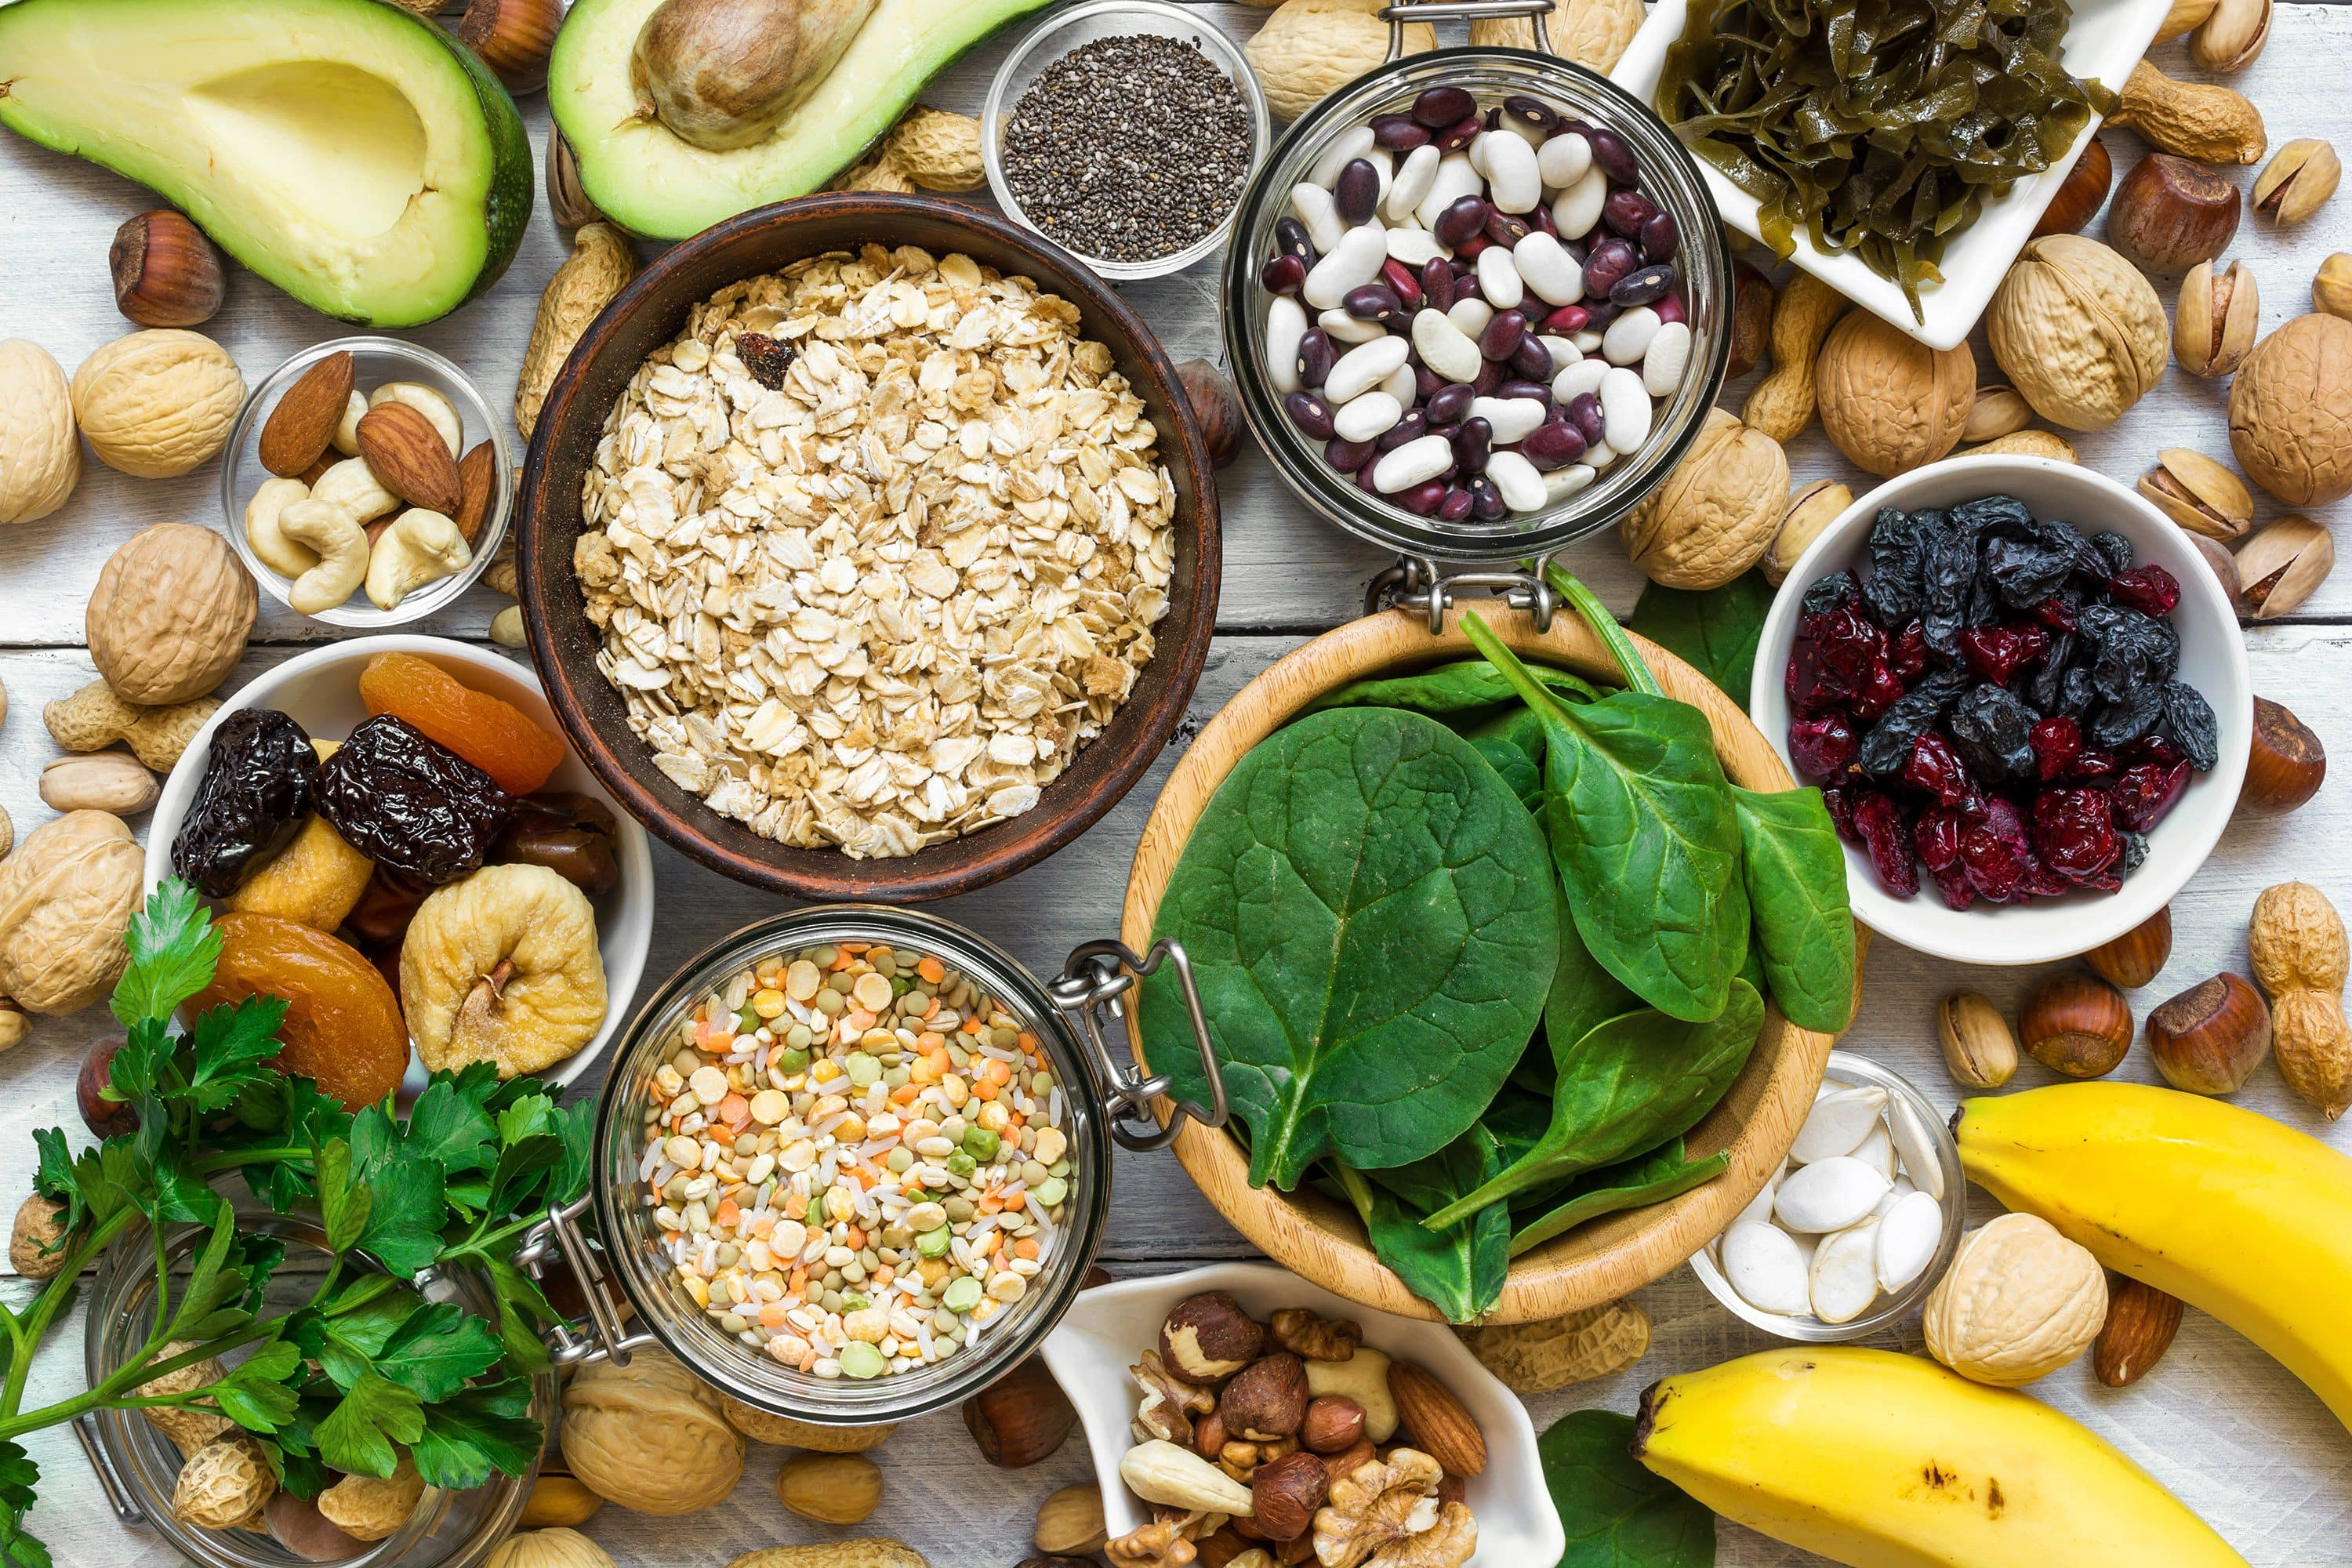 Fruit, nuts, seeds and other healthy foods